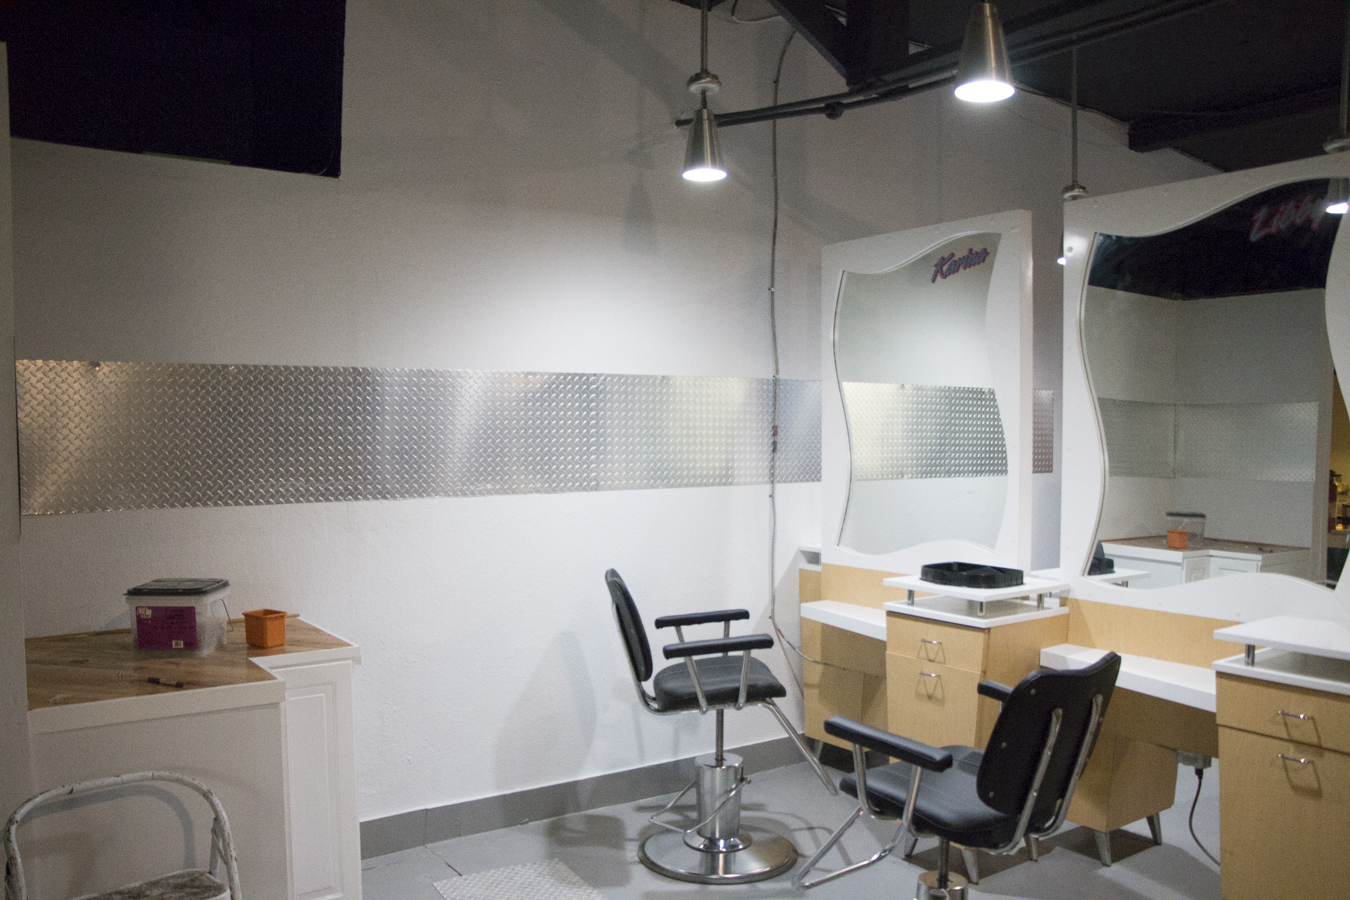 5 Uses For Aluminum Diamond Plate On Walls Cutsmetal Net